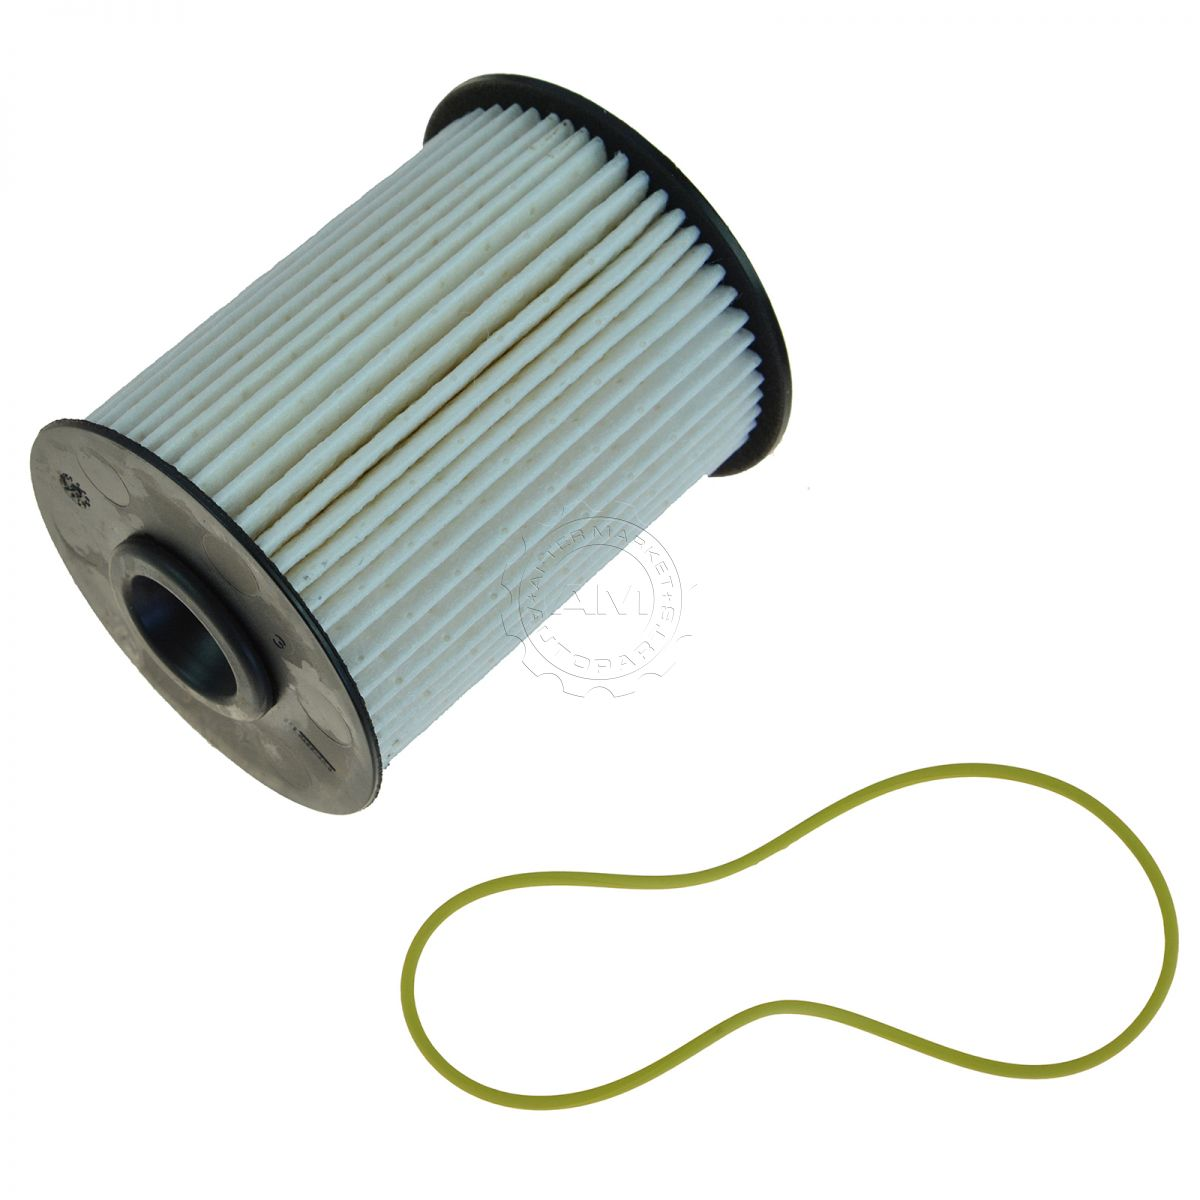 hight resolution of mopar 68001914ab diesel fuel filter for 00 09 dodge ram 2500 3500 l6 5 9l